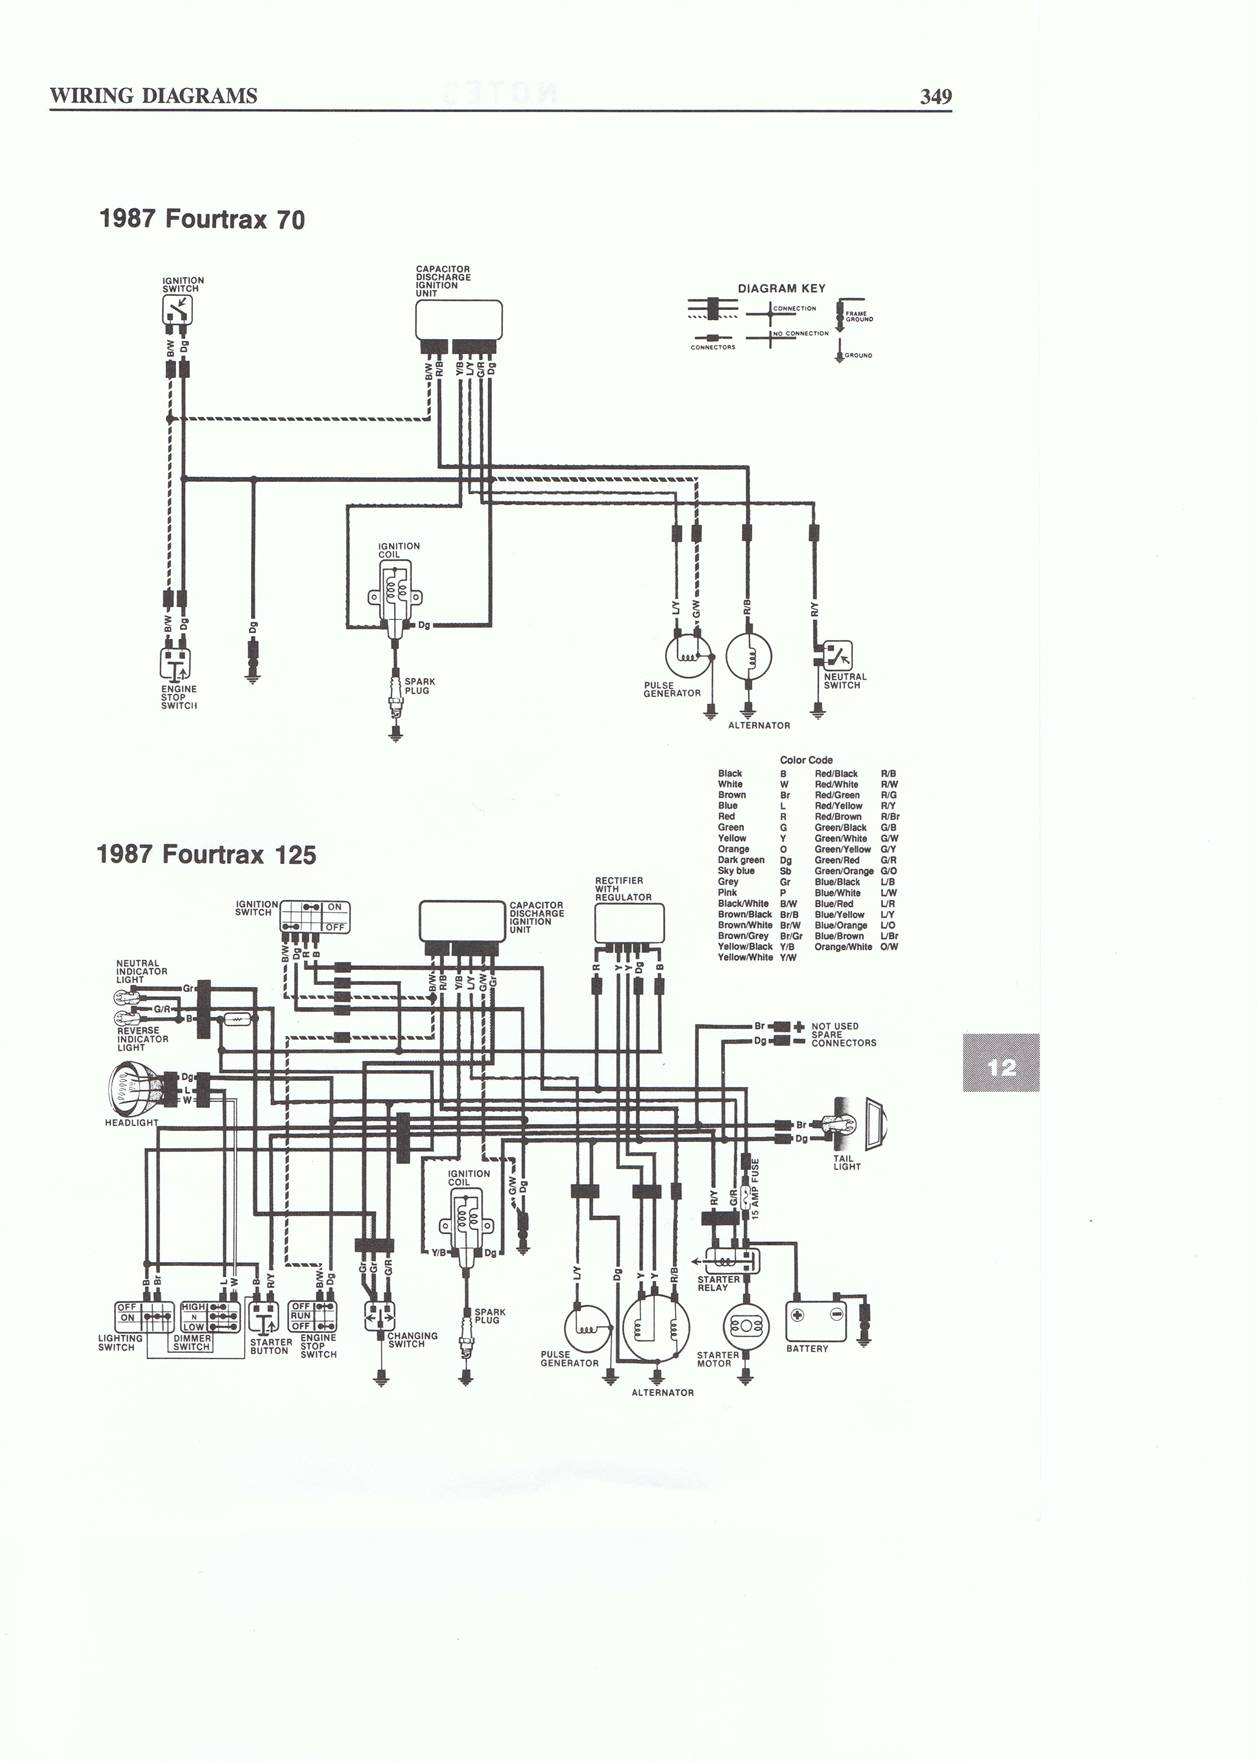 gy6 engine wiring diagram?t=1398725710 gy6 engine wiring diagram  at soozxer.org